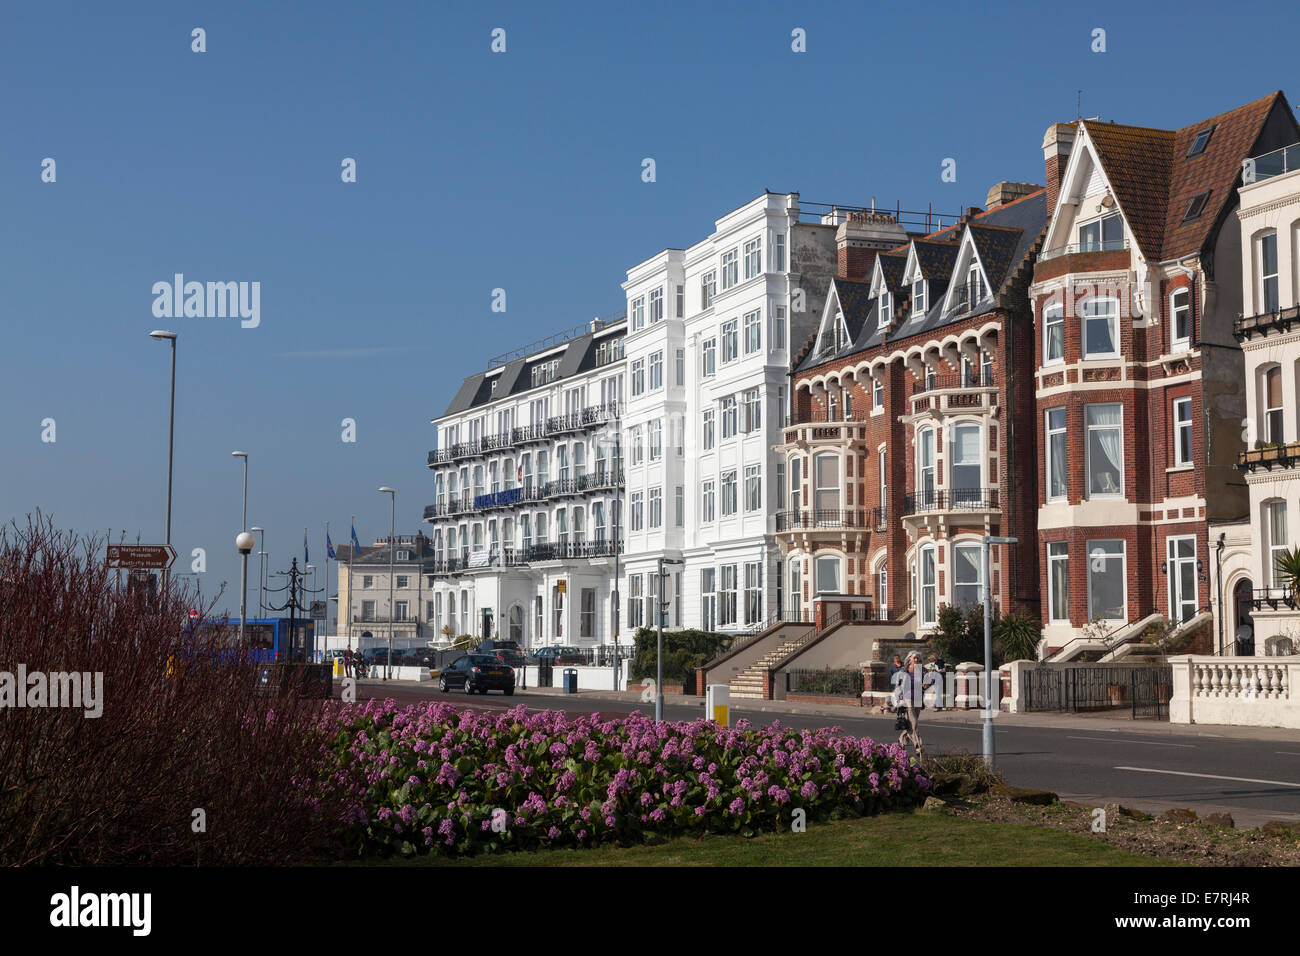 Hotels on the seafront promenade at Southsea. Stock Photo